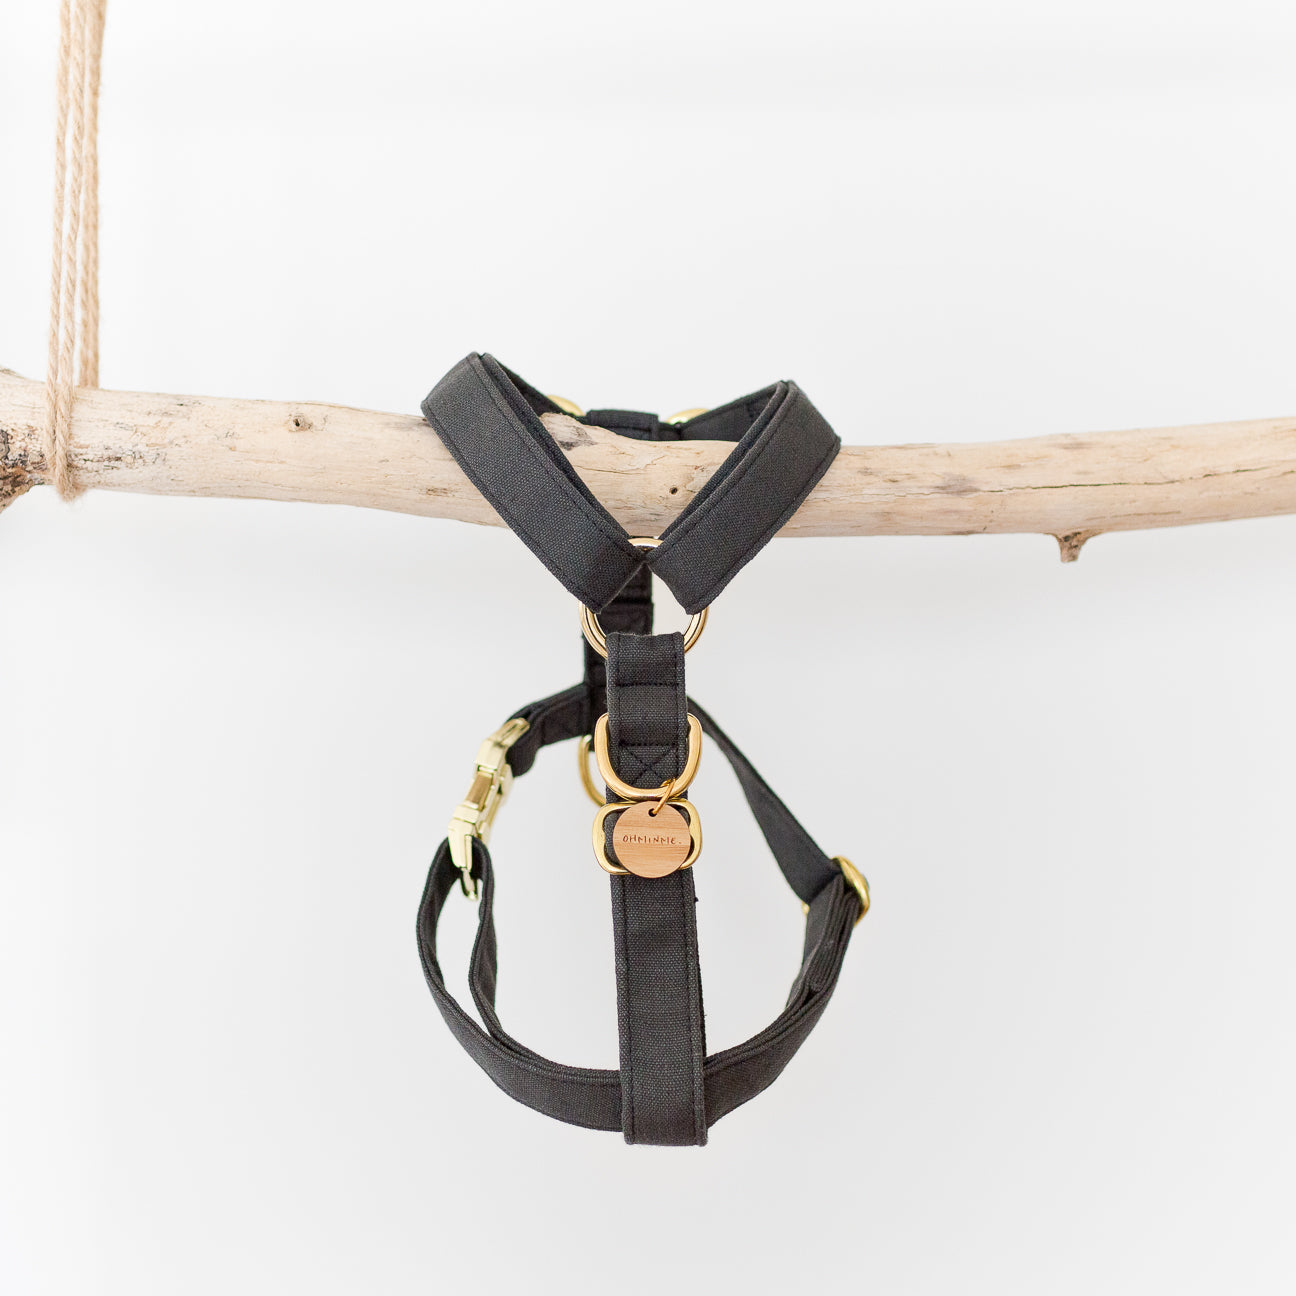 Leka CARBON Harness | Hemp & Organic Cotton